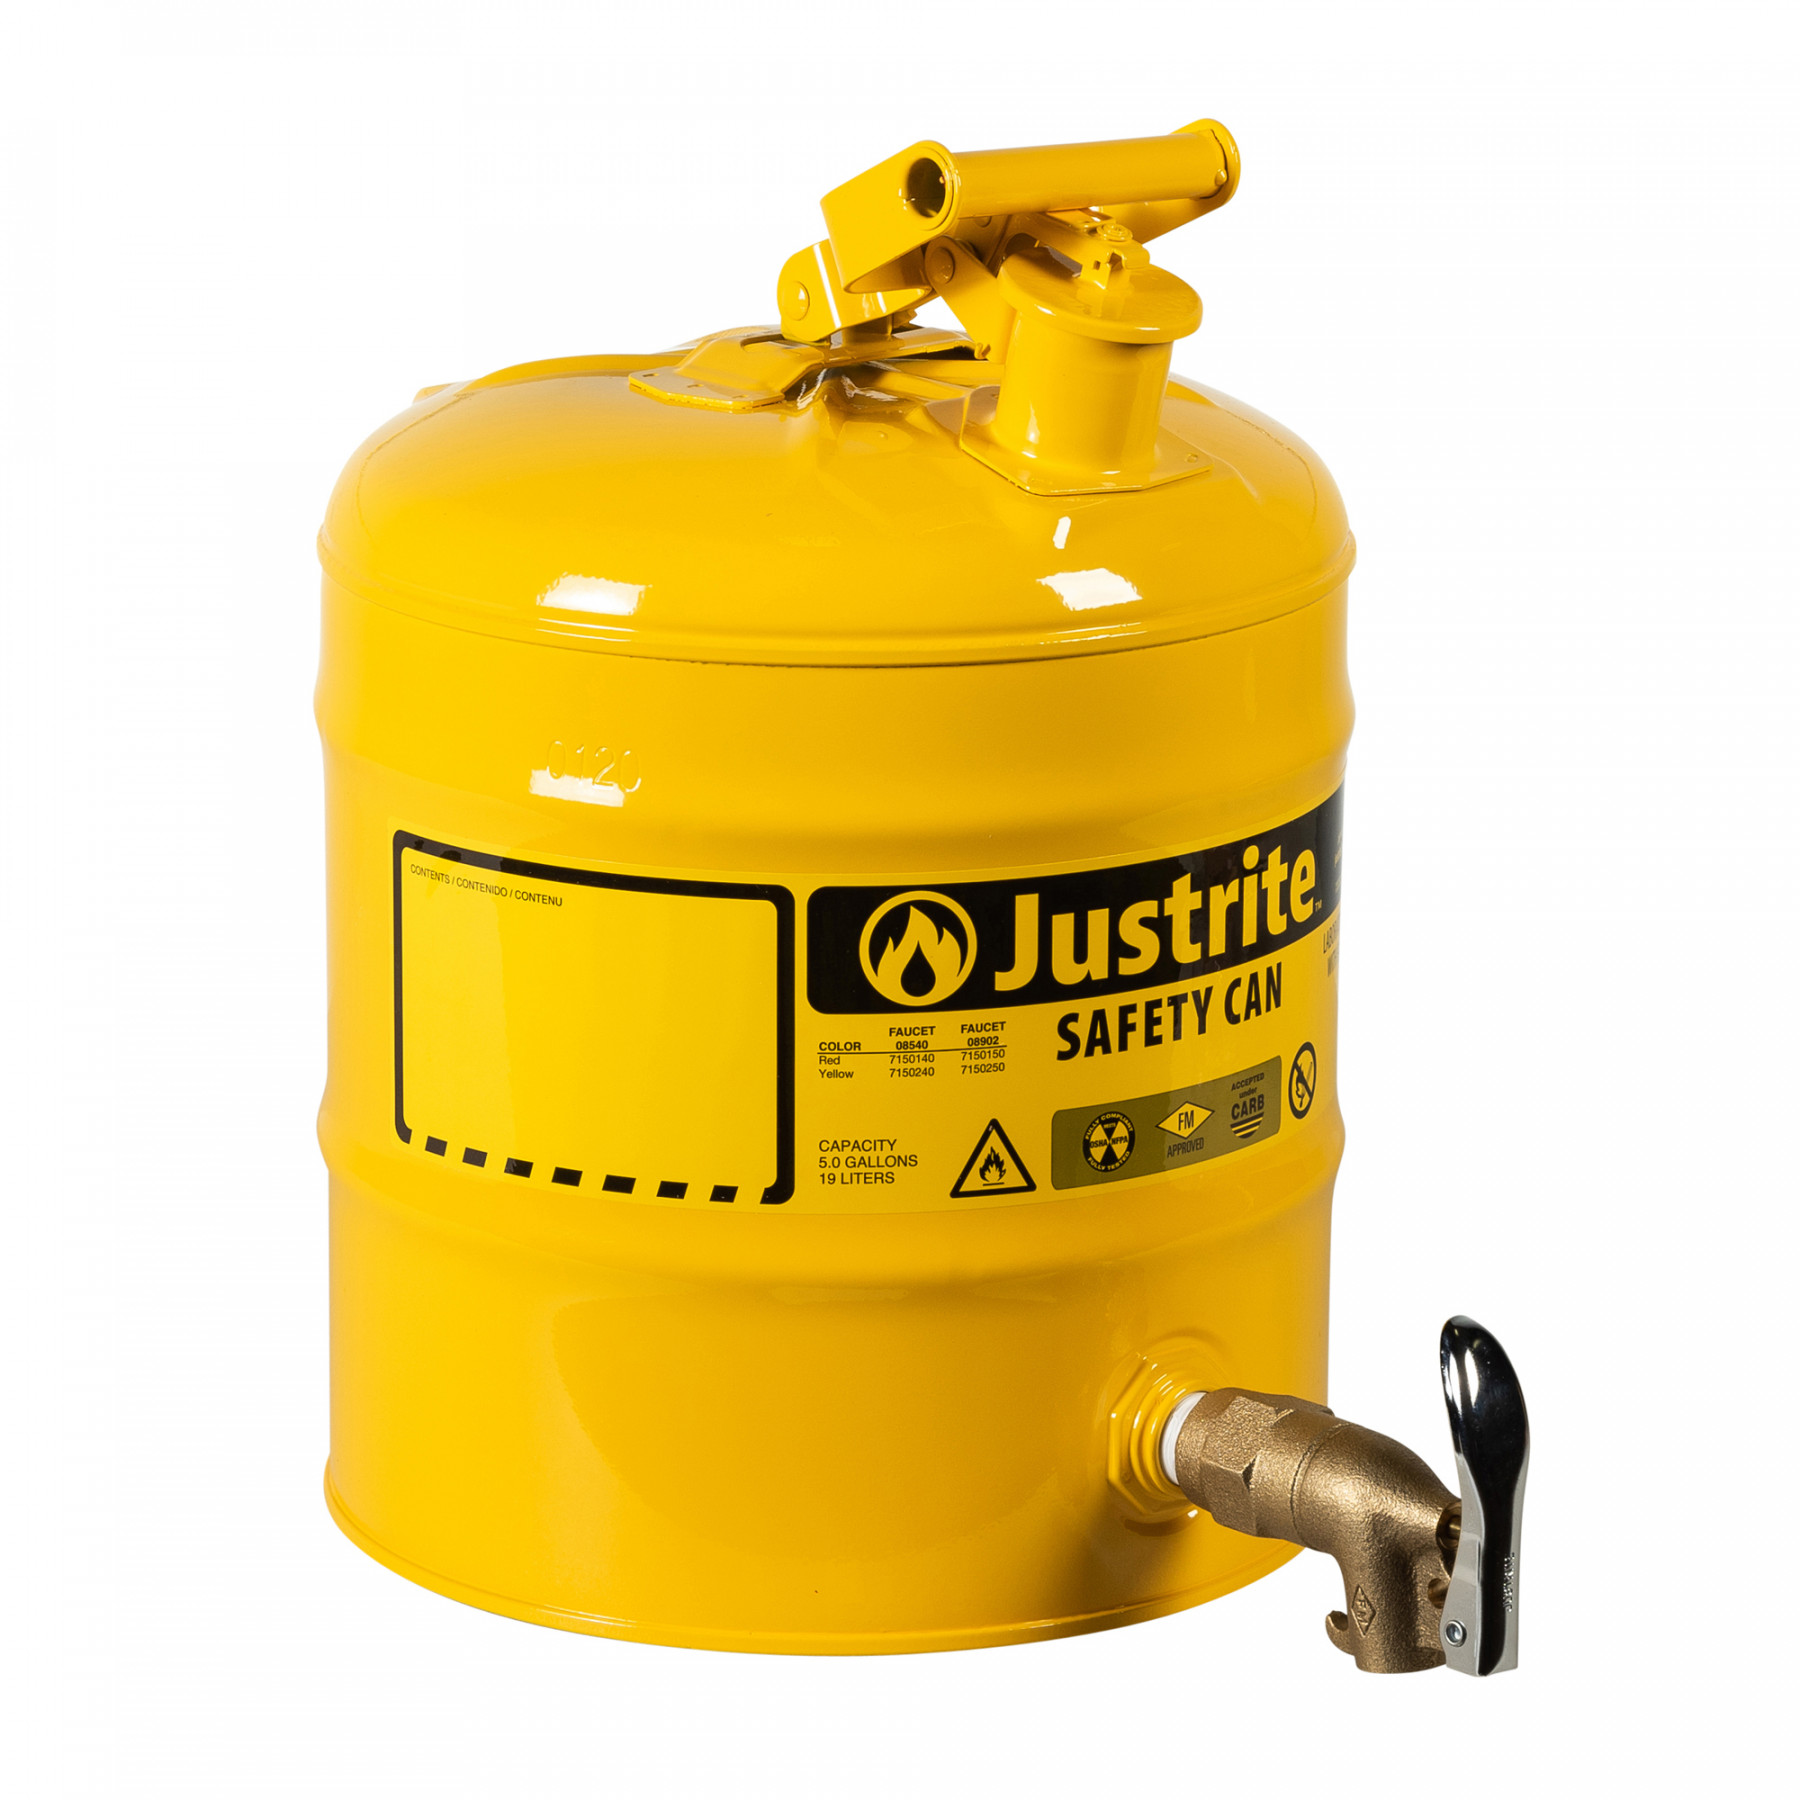 7150250_type-1-safety-can-5-gallon-yellow_justrite_1cDk54YQoCFCOt